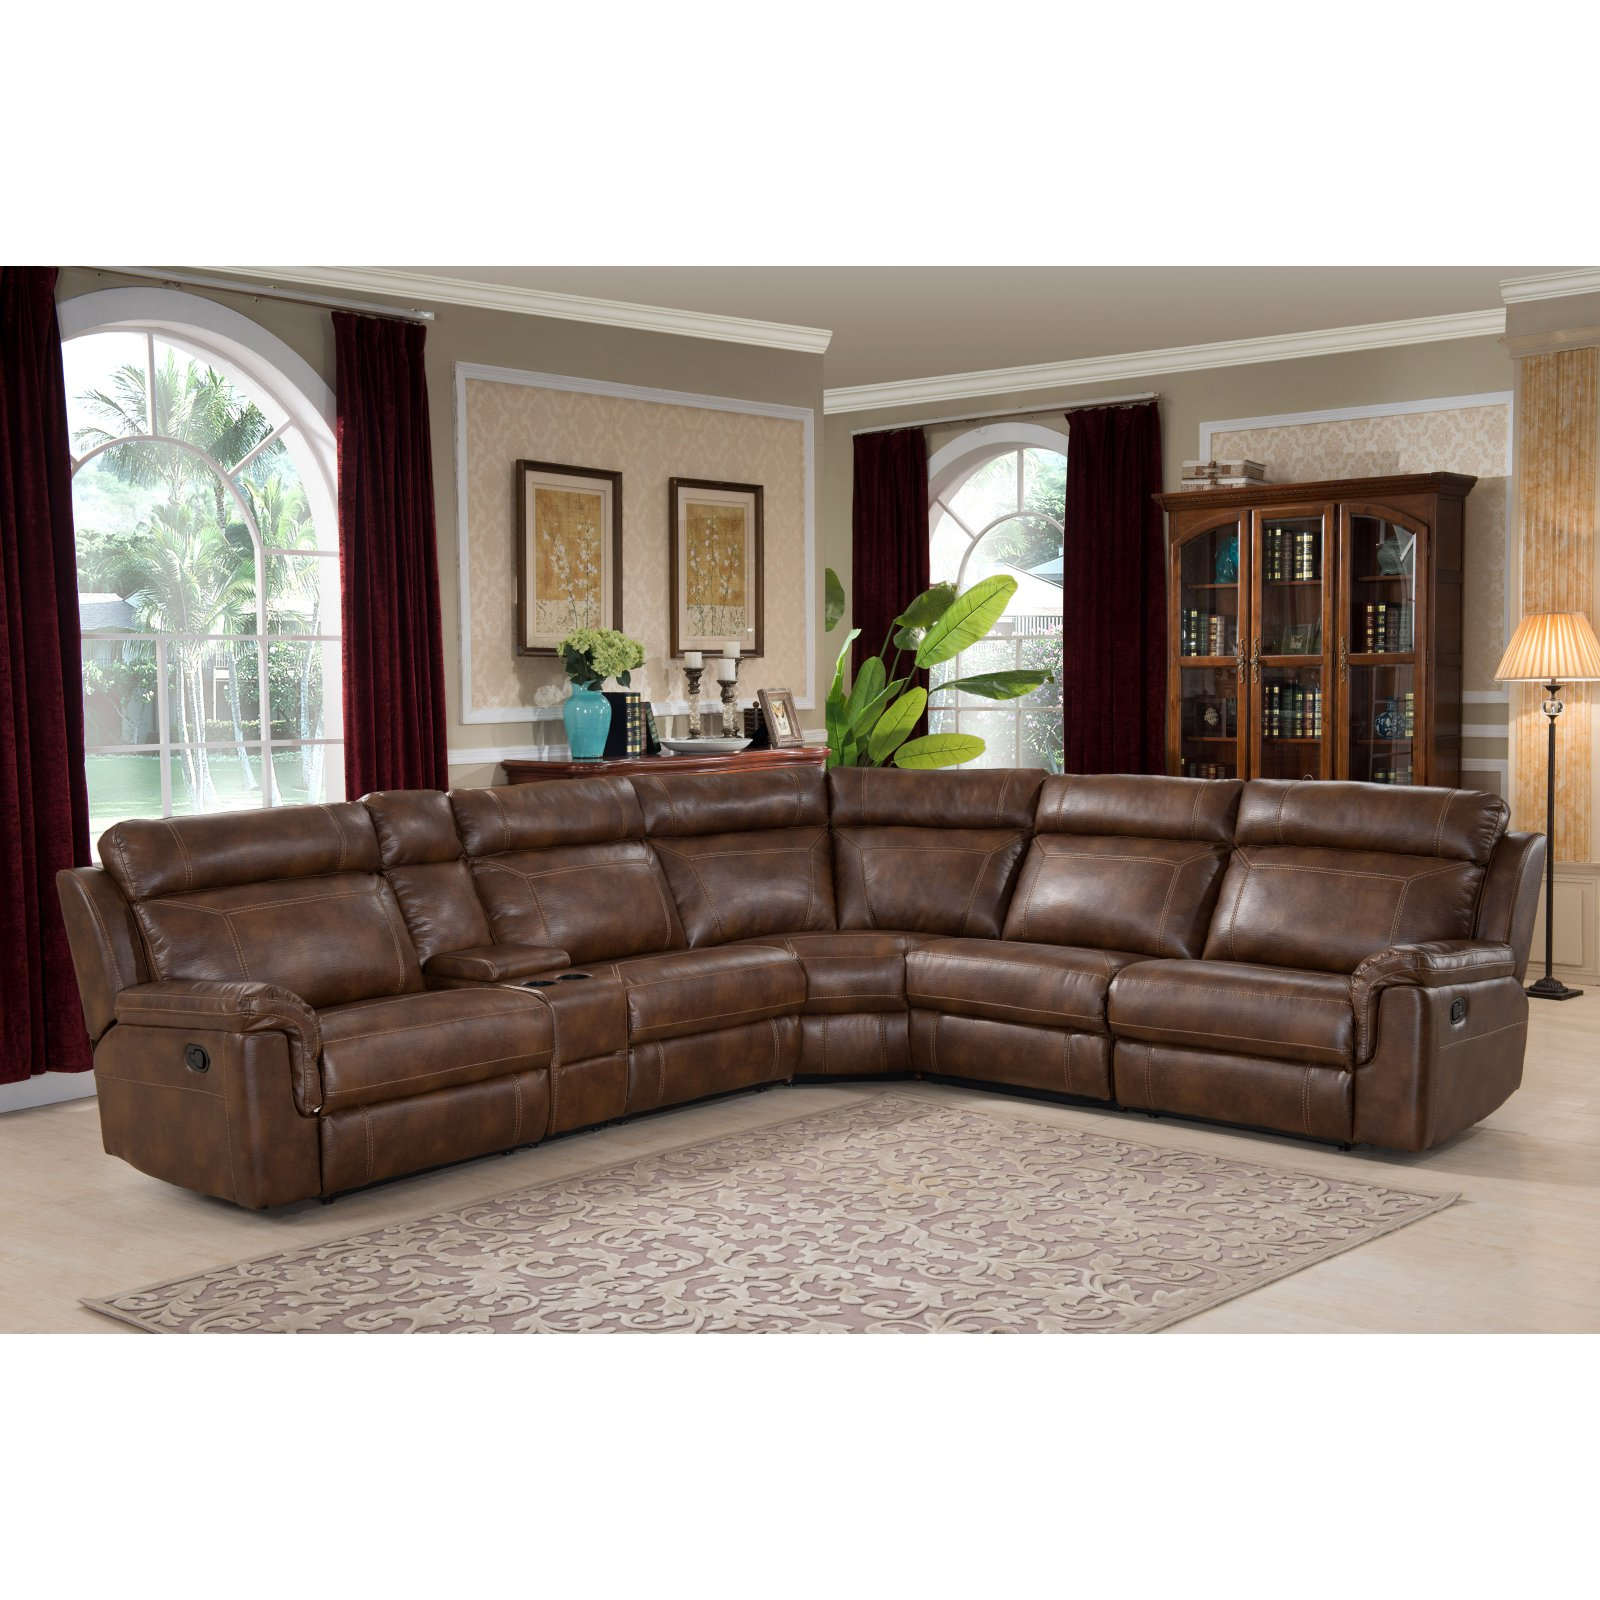 Christies Home Living Clark 6 Piece Reclining Living Room Sectional Sofa